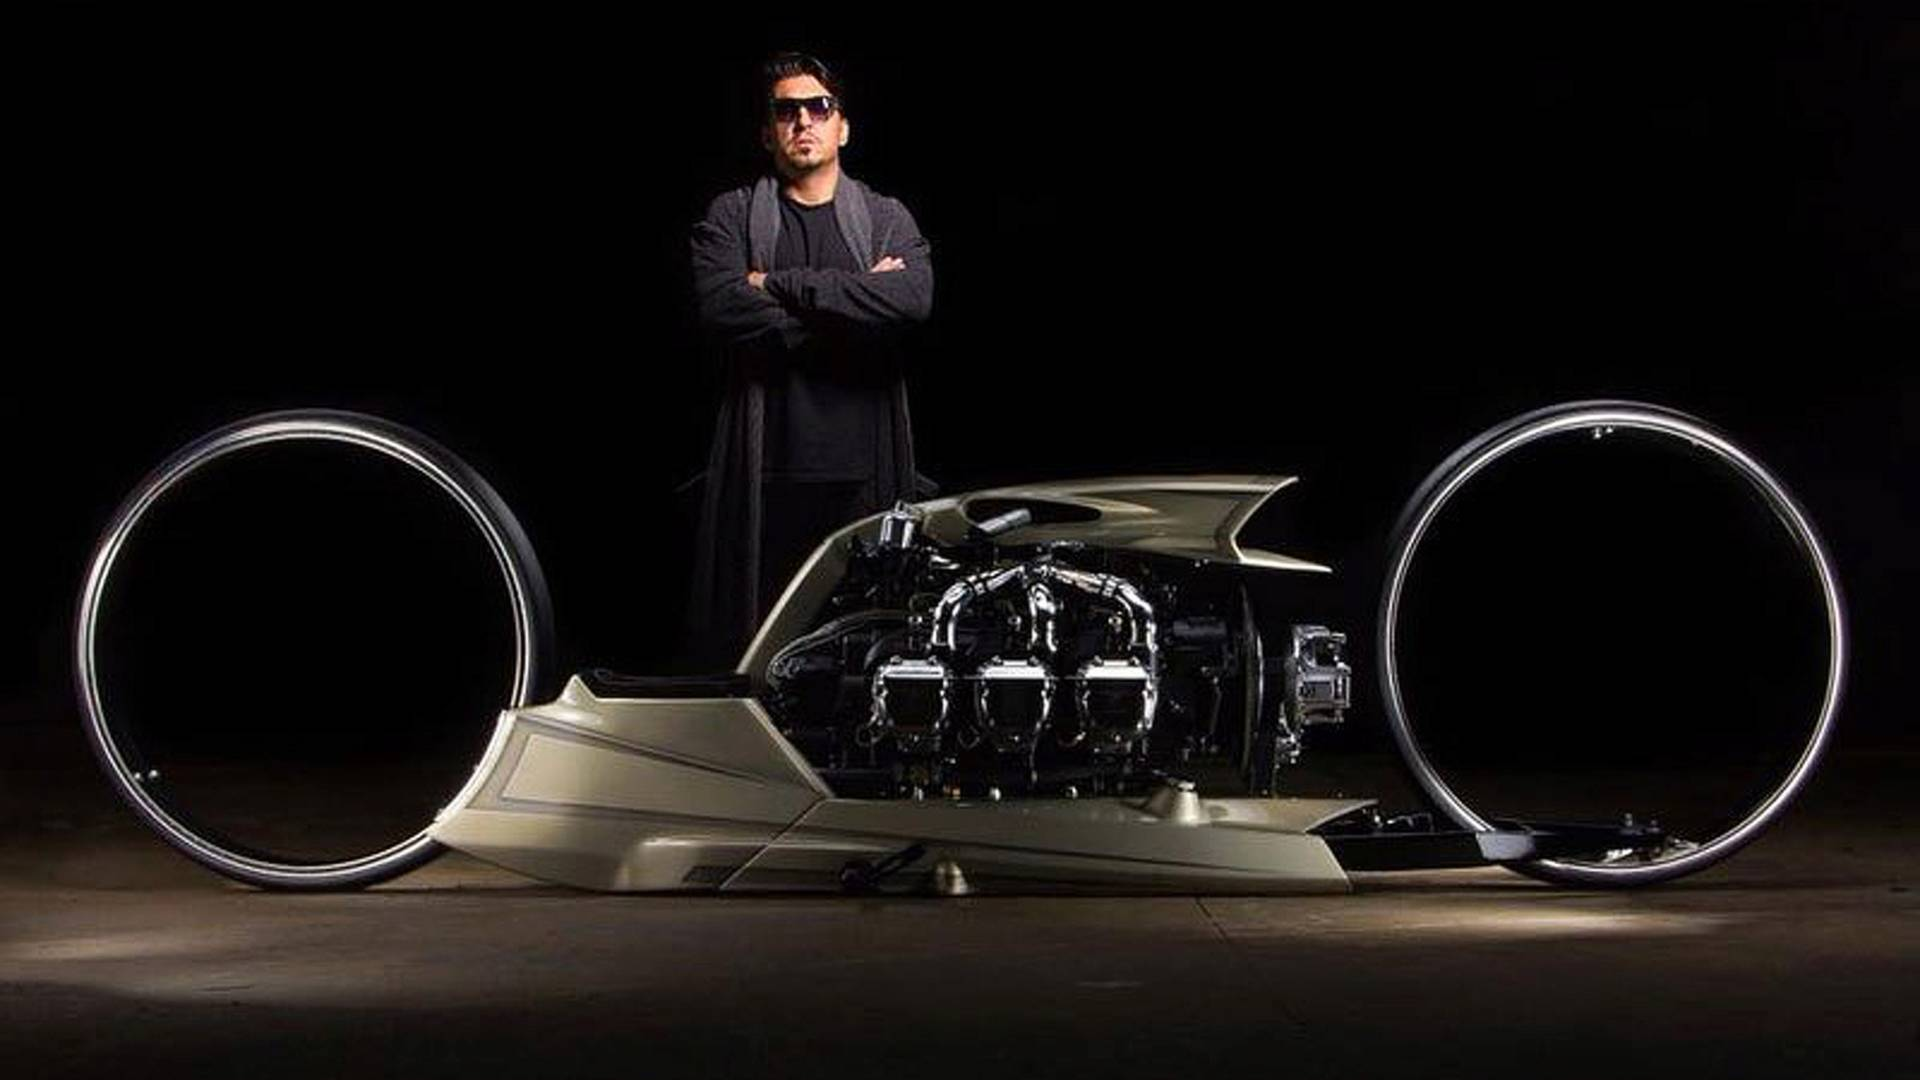 Insane Airplane Engine Motorcycle Concept